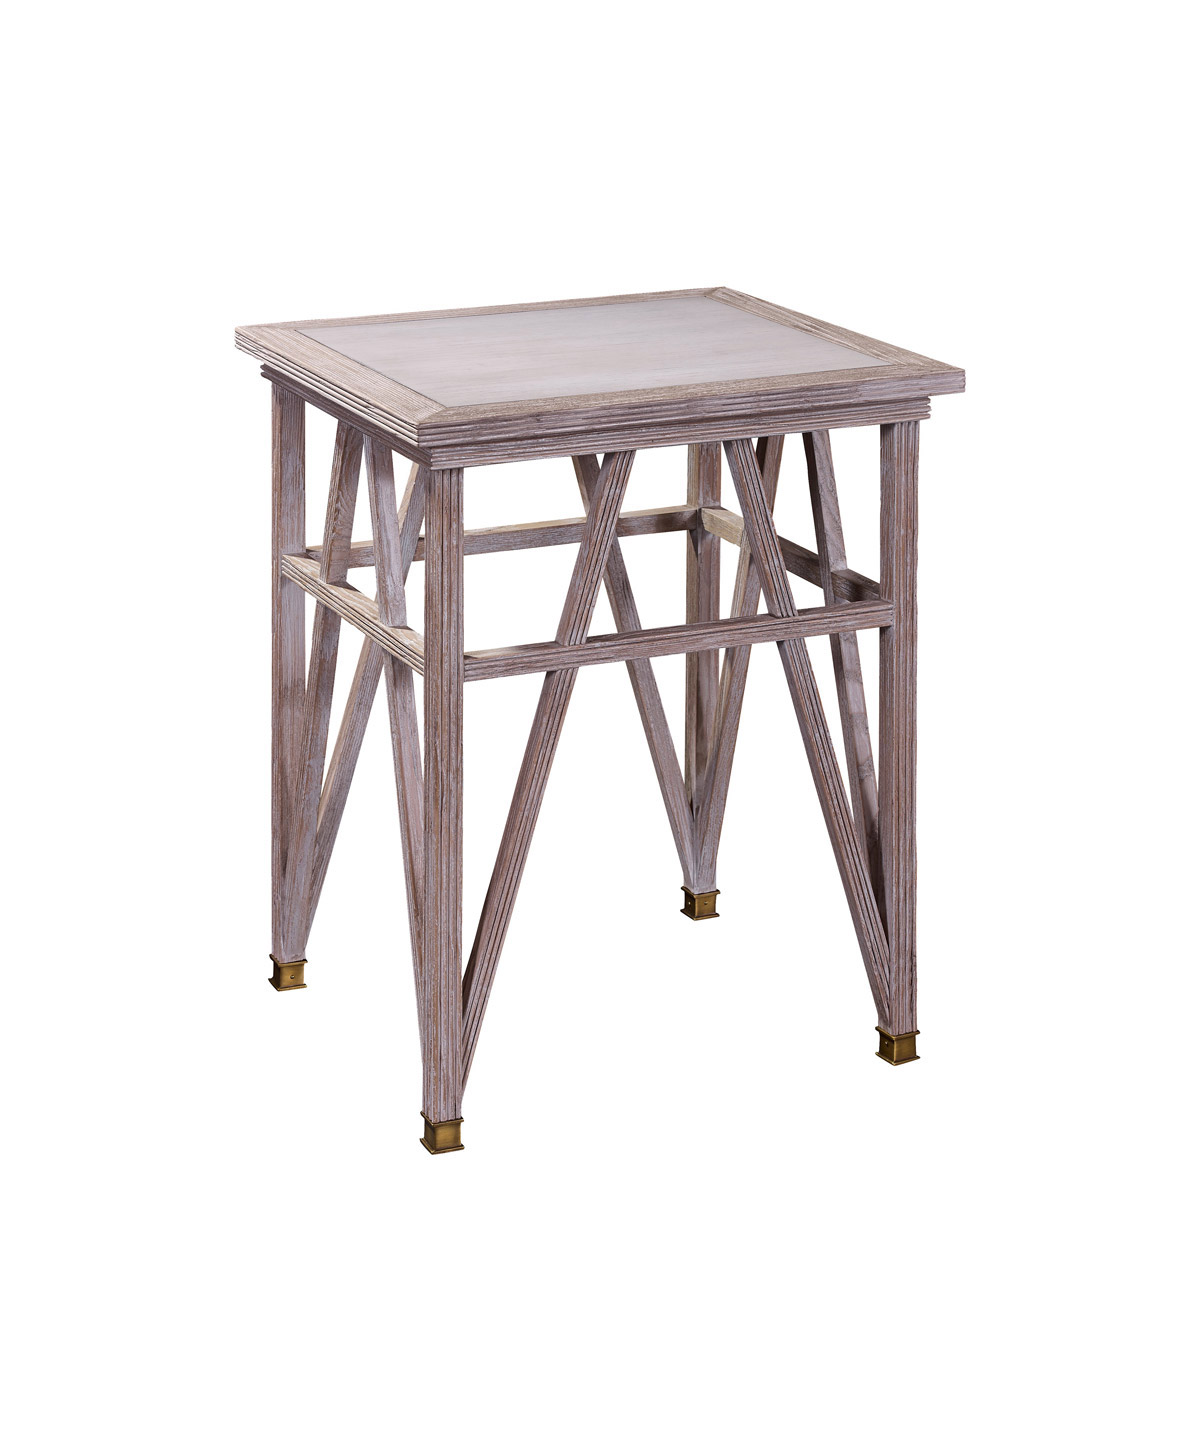 Marten Side Table